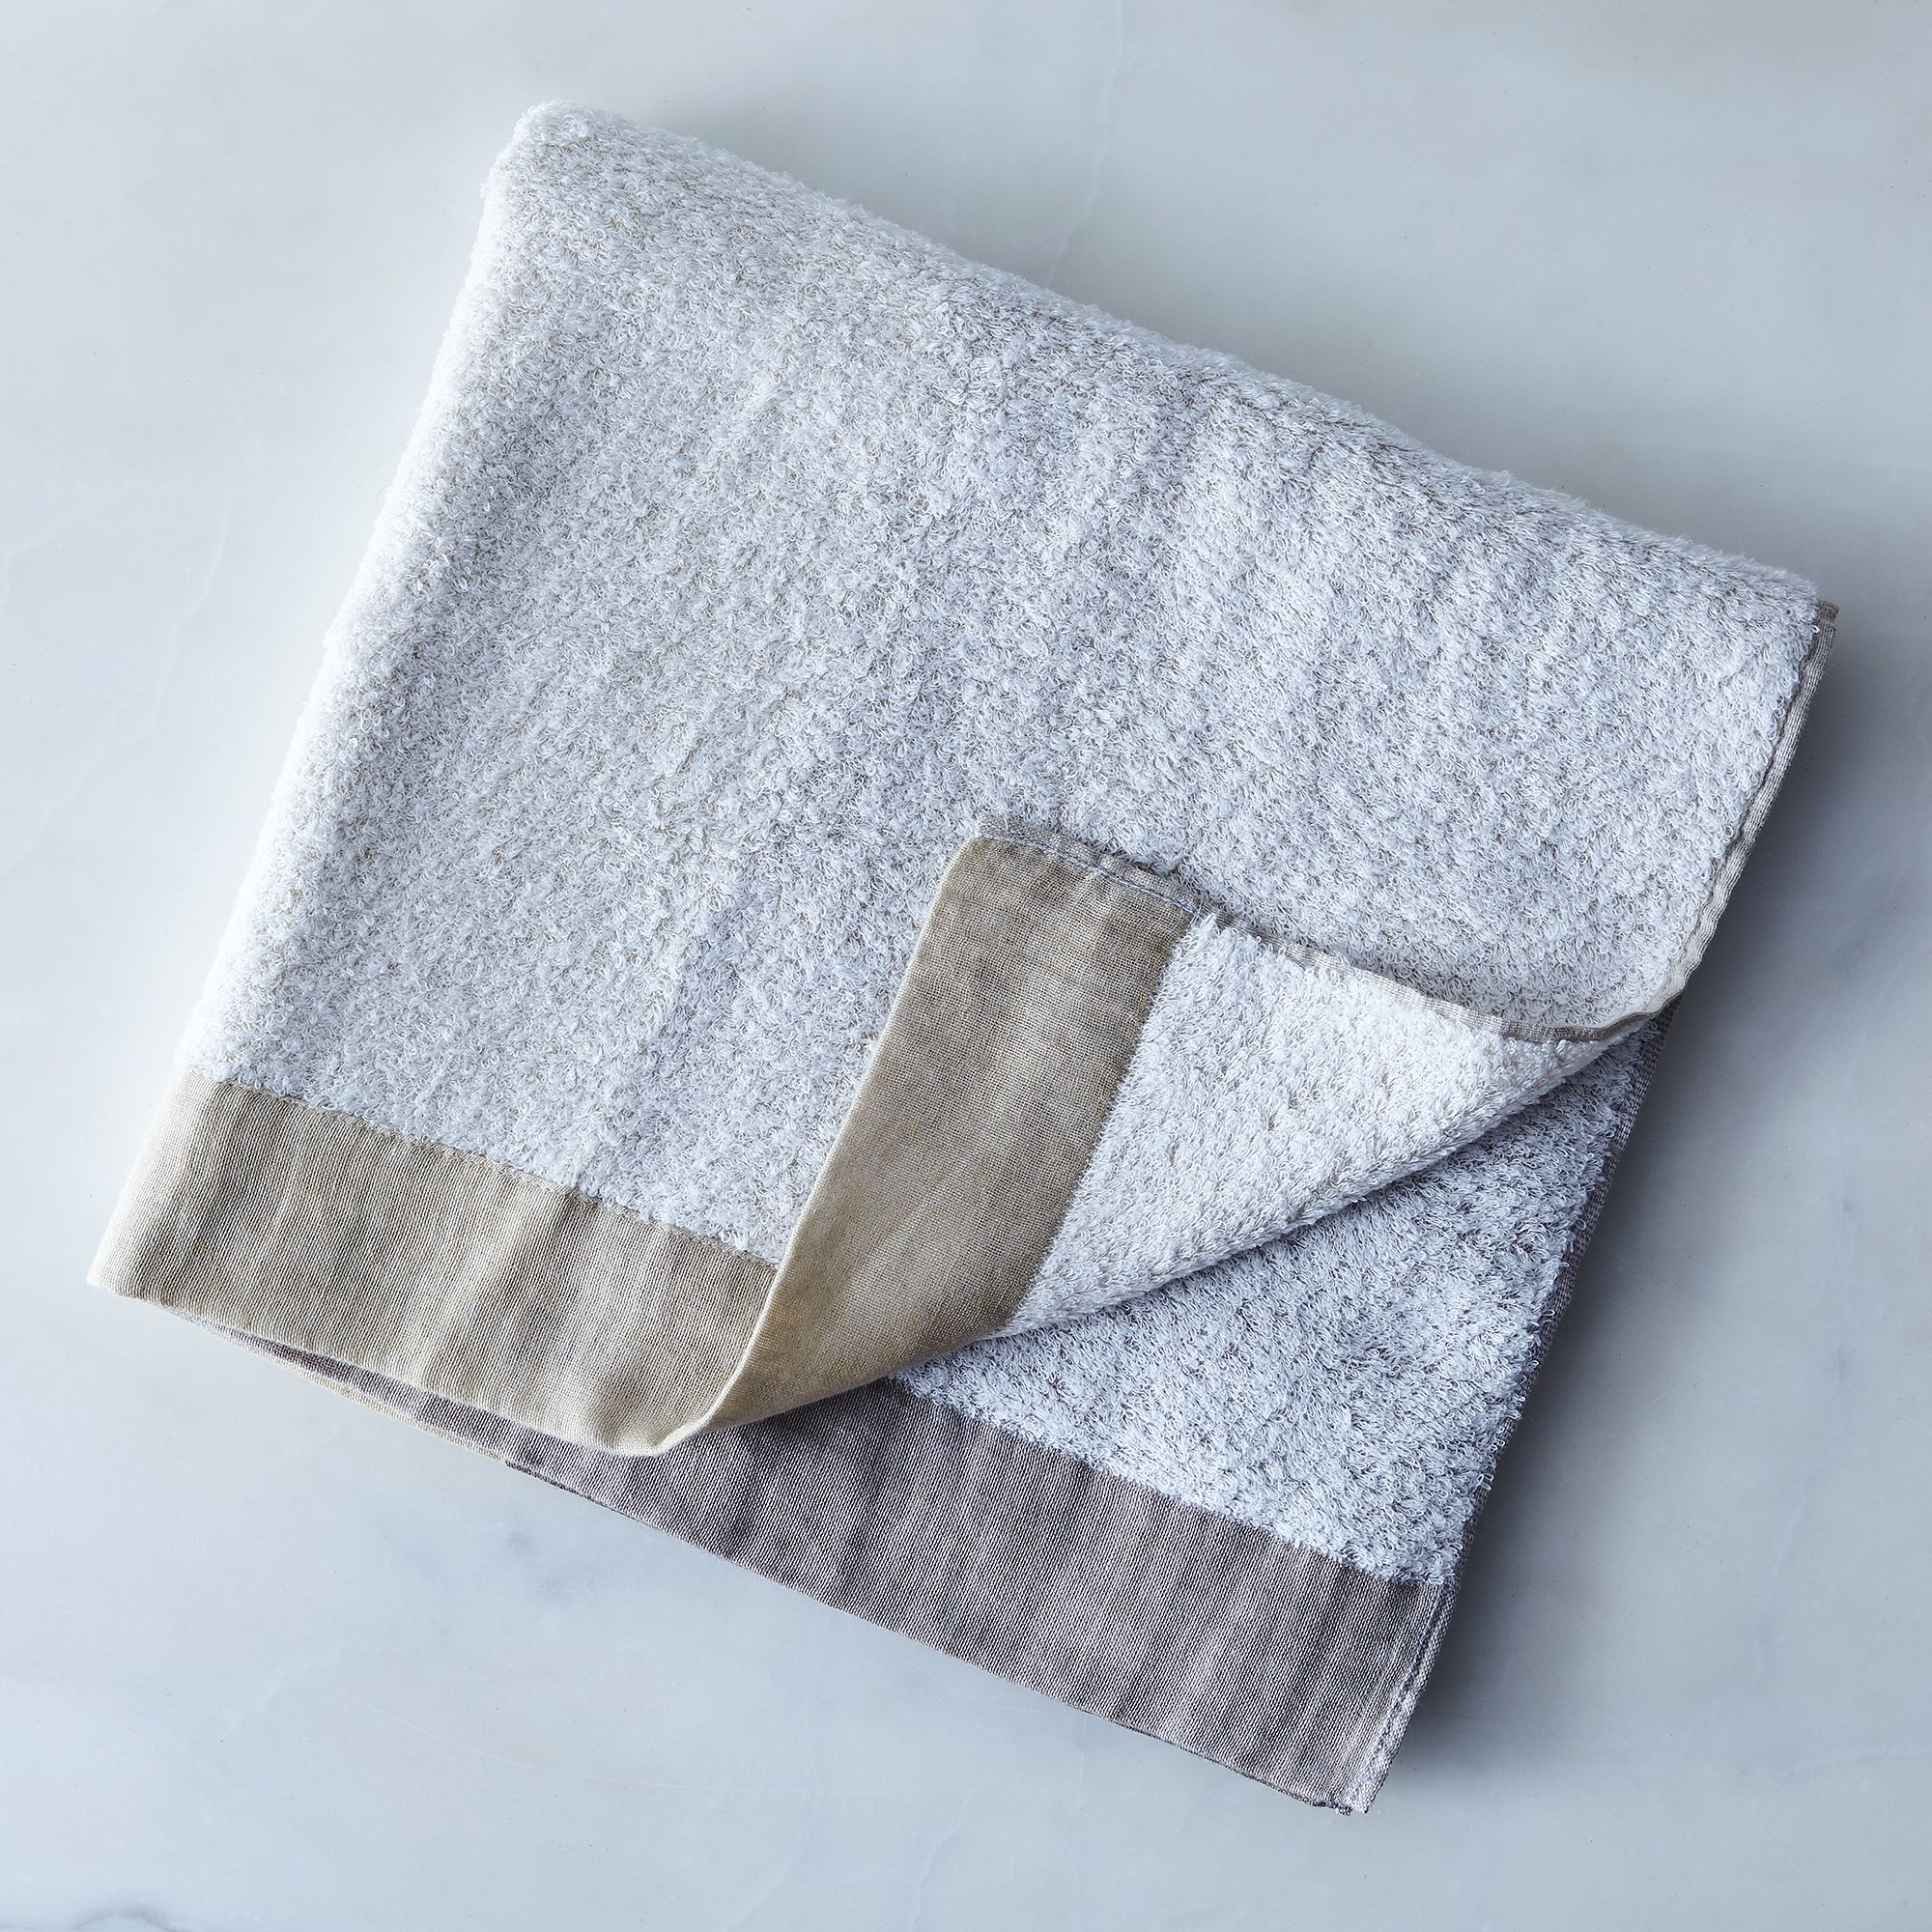 8d7b7b47 2550 461b ab8f 79e8d86ec93a  2017 0404 morihata international linen and cotton blend colorblock towels neutral bath towel silo rocky luten 0439